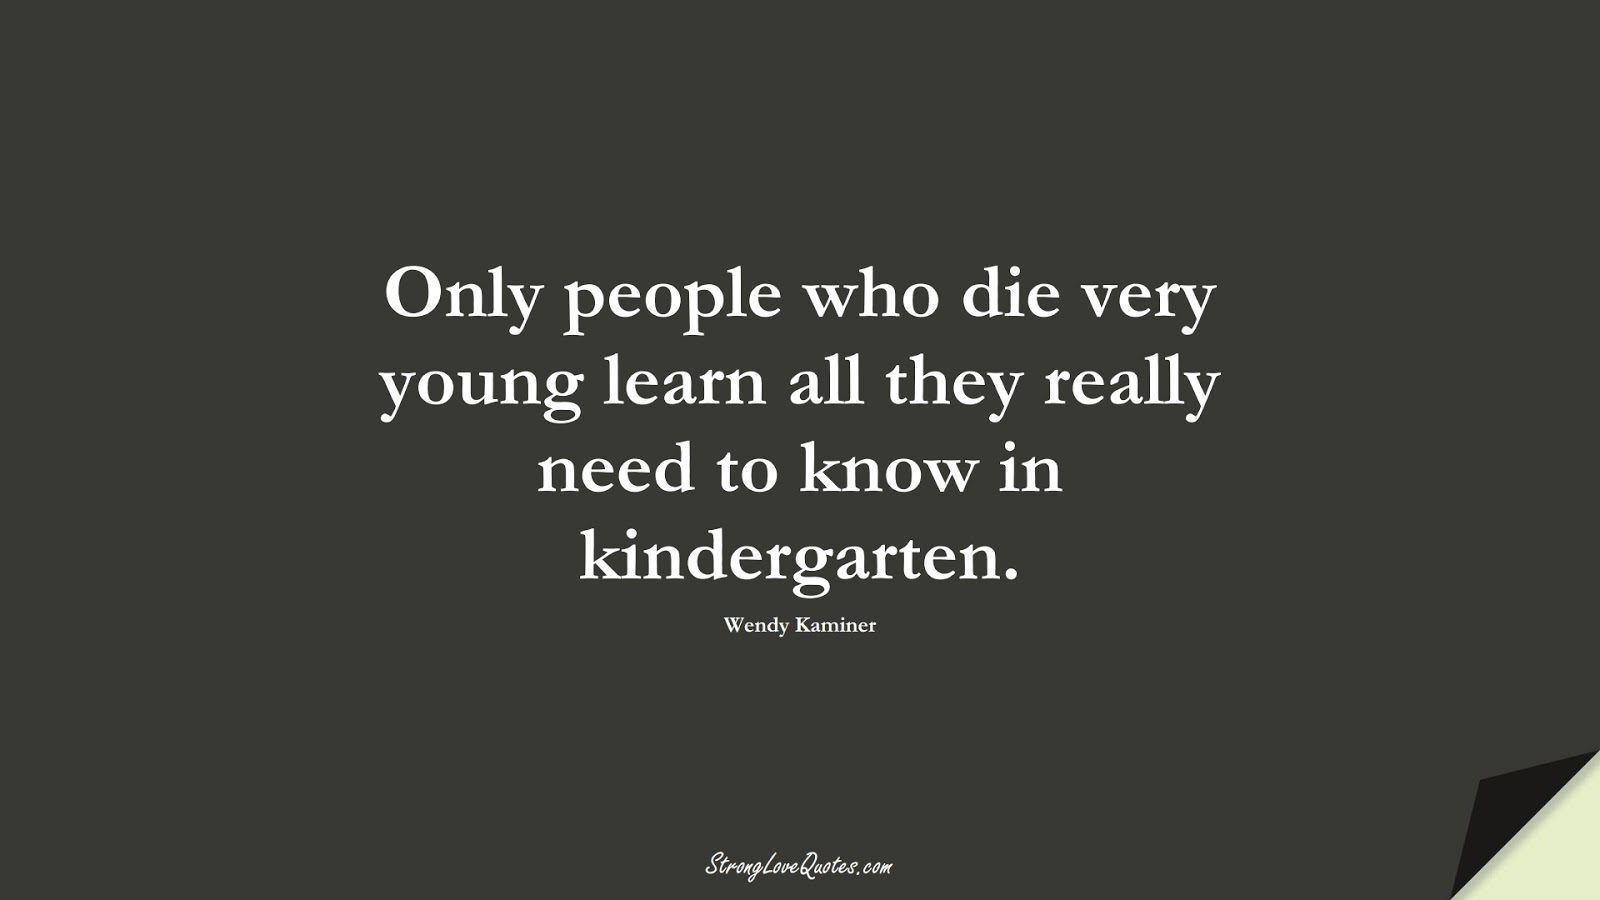 Only people who die very young learn all they really need to know in kindergarten. (Wendy Kaminer);  #LearningQuotes